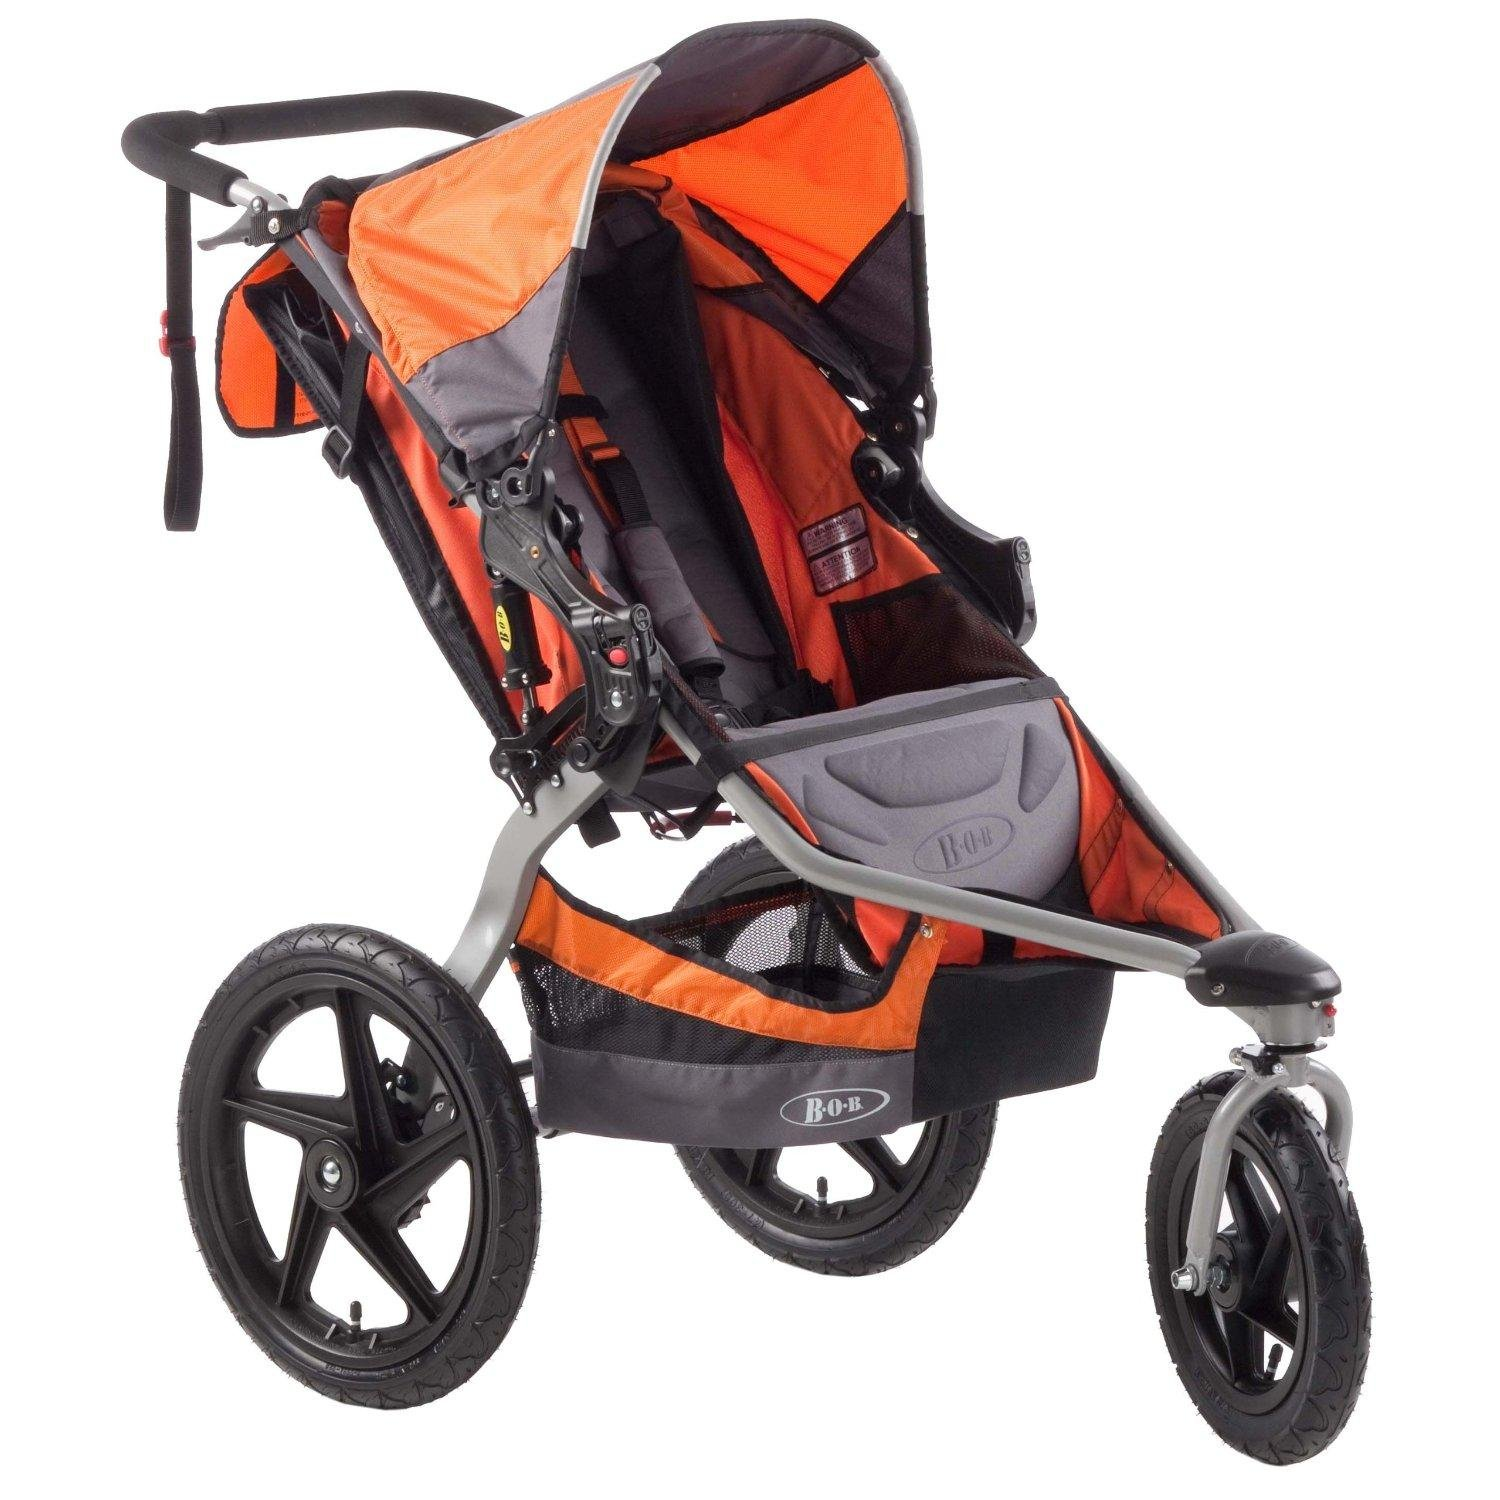 Coches para bebes cochesparabebes twitter for Coches para bebes